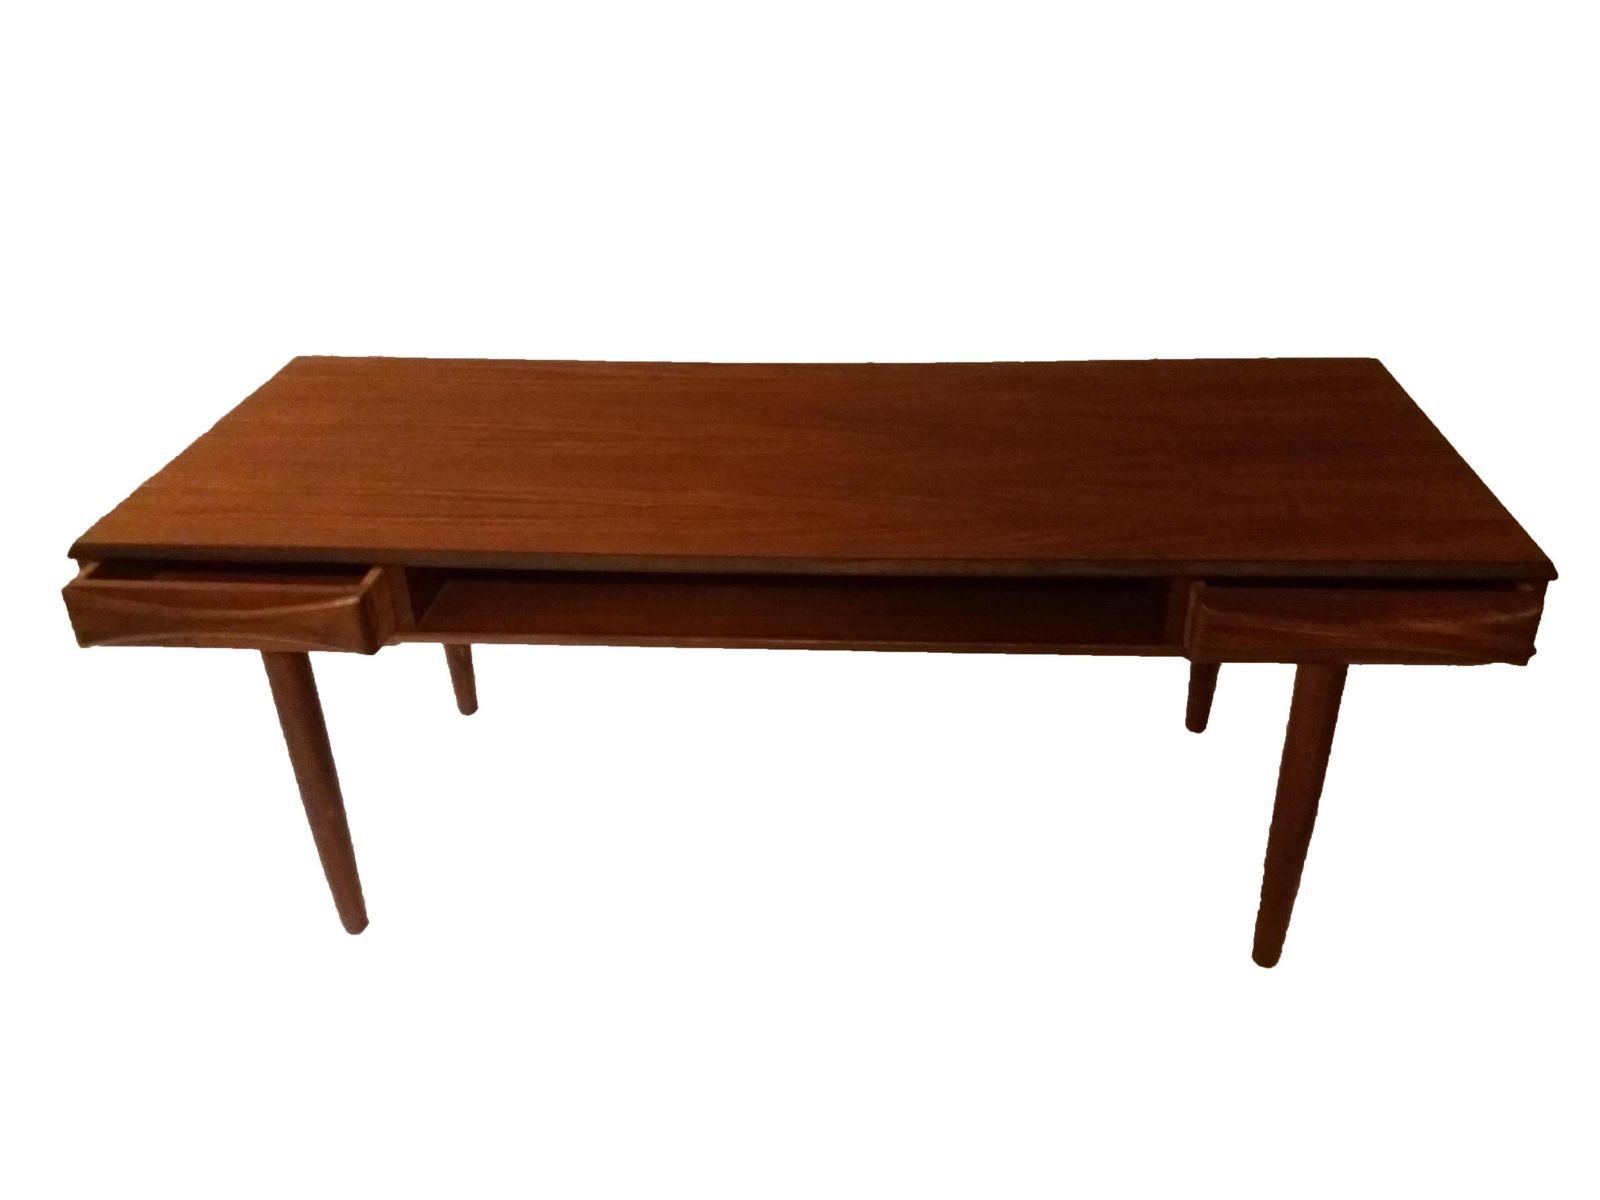 Danish teak coffee table with shelf 1960s for sale at pamono for Coffee table with shelf underneath